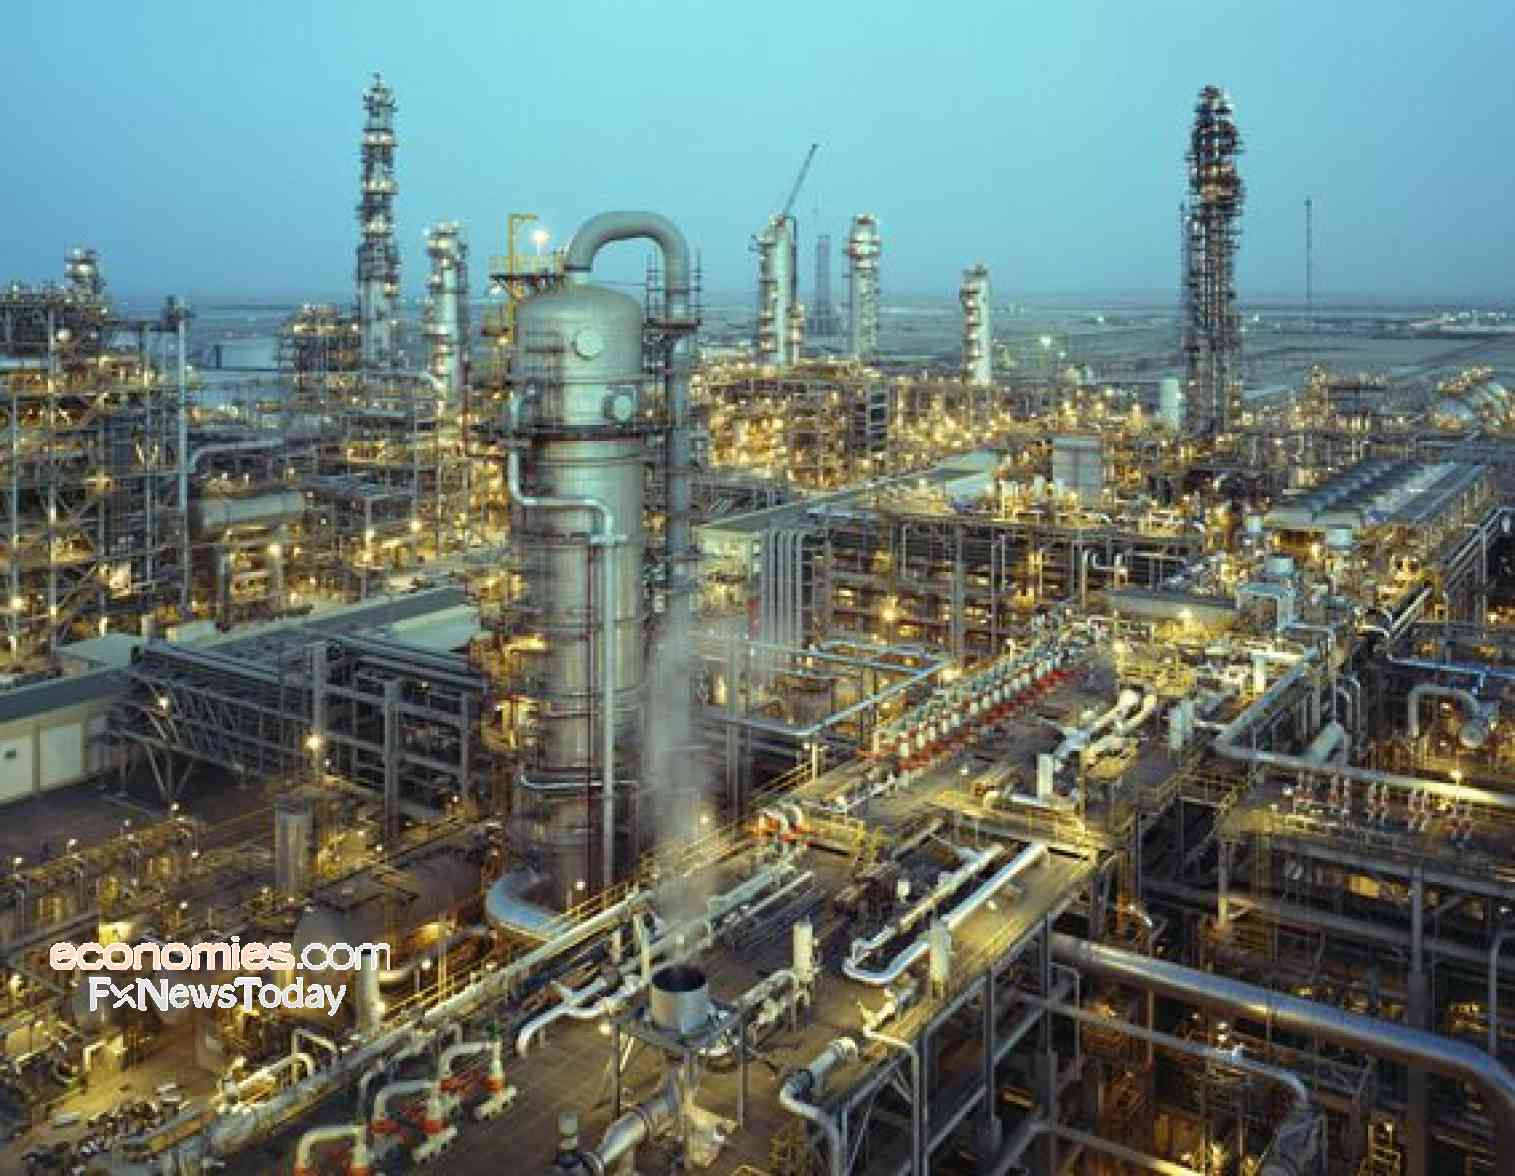 Nama Chemicals turns profit in Q3 on stronger sales